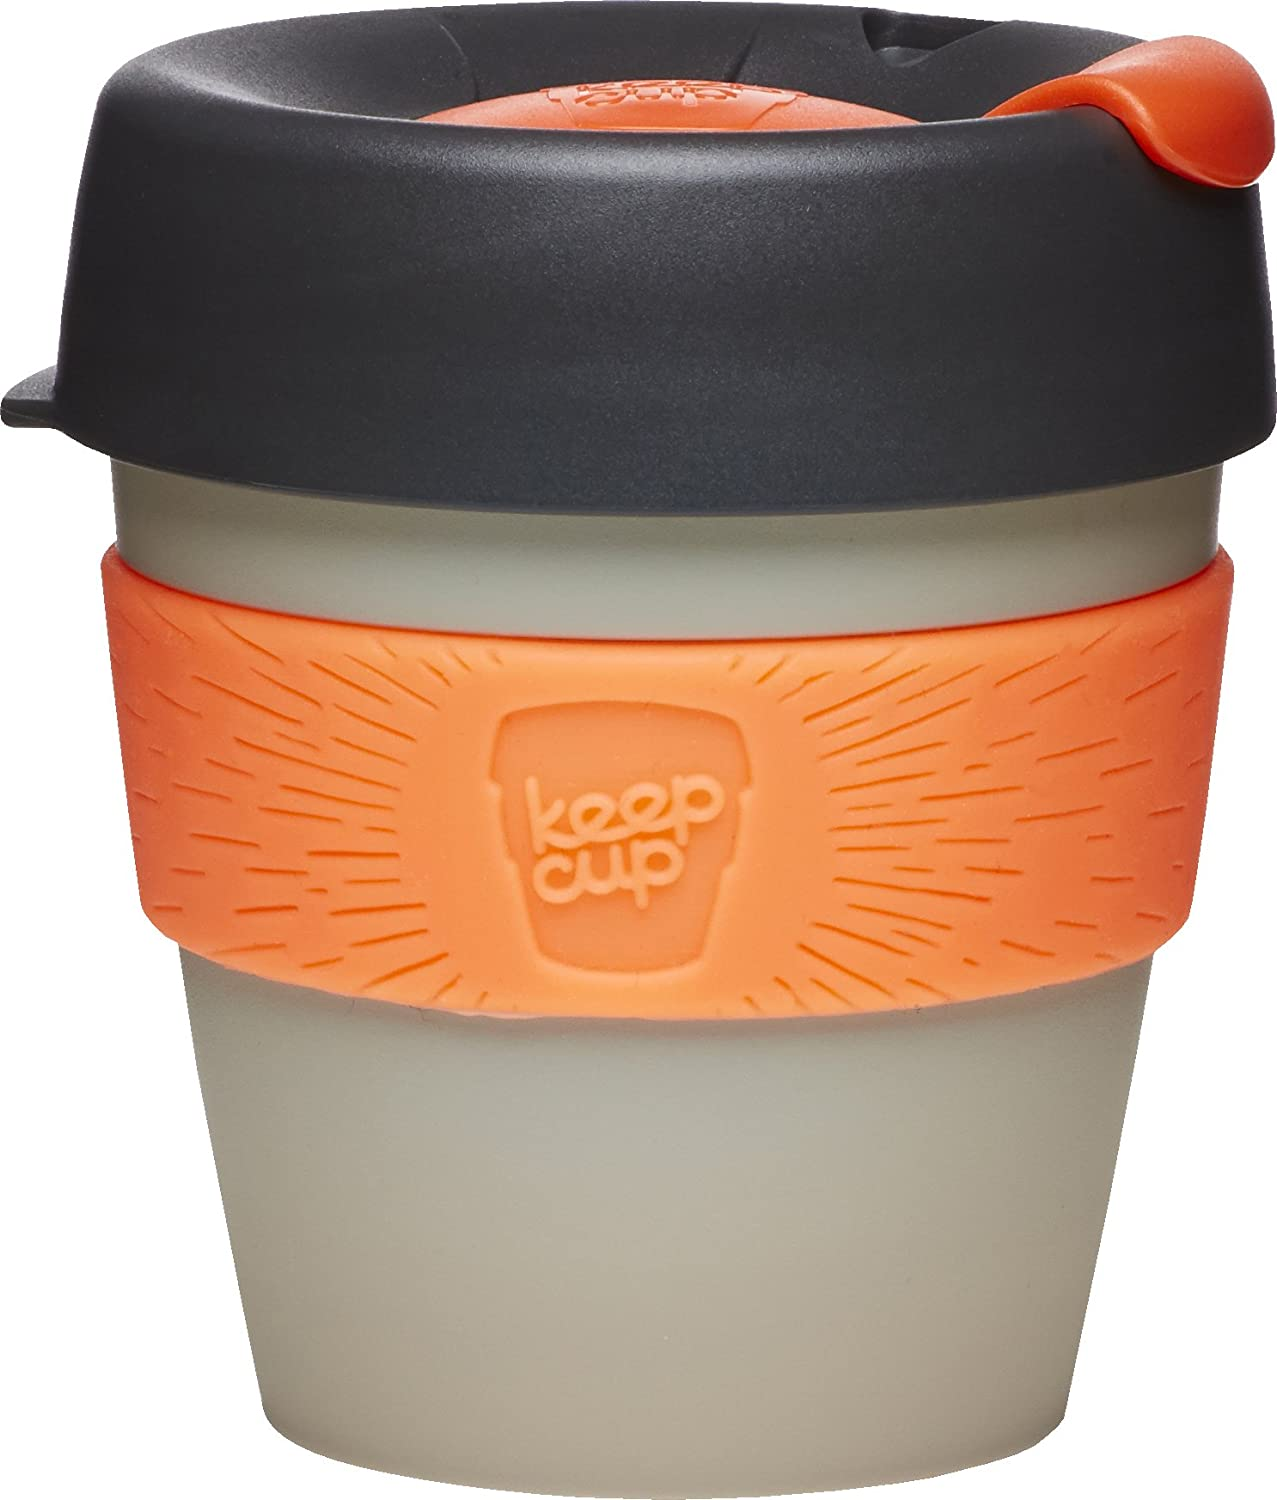 KeepCup Original Reusable Coffee Cup, 8 oz/Small, Pandora